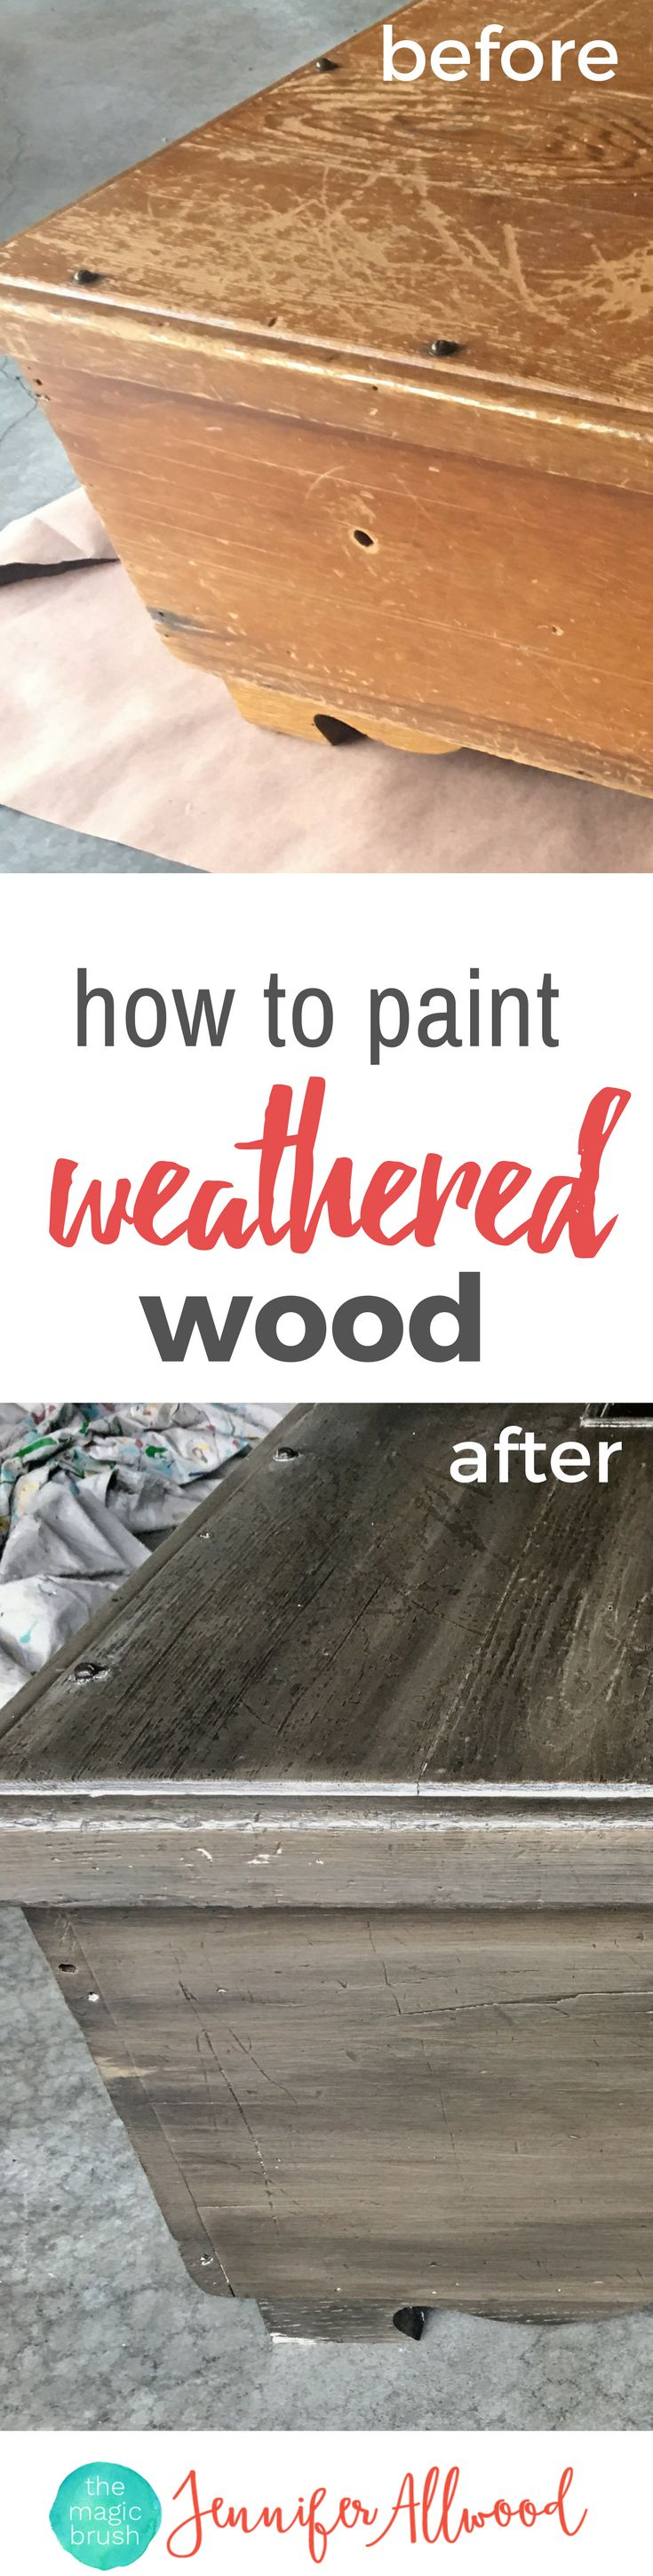 How to paint weathered wood finish. Make any surface look like weathered barnwood and go with farmhouse decor. Painting Tips and Techniques by theMagicBrushin.com